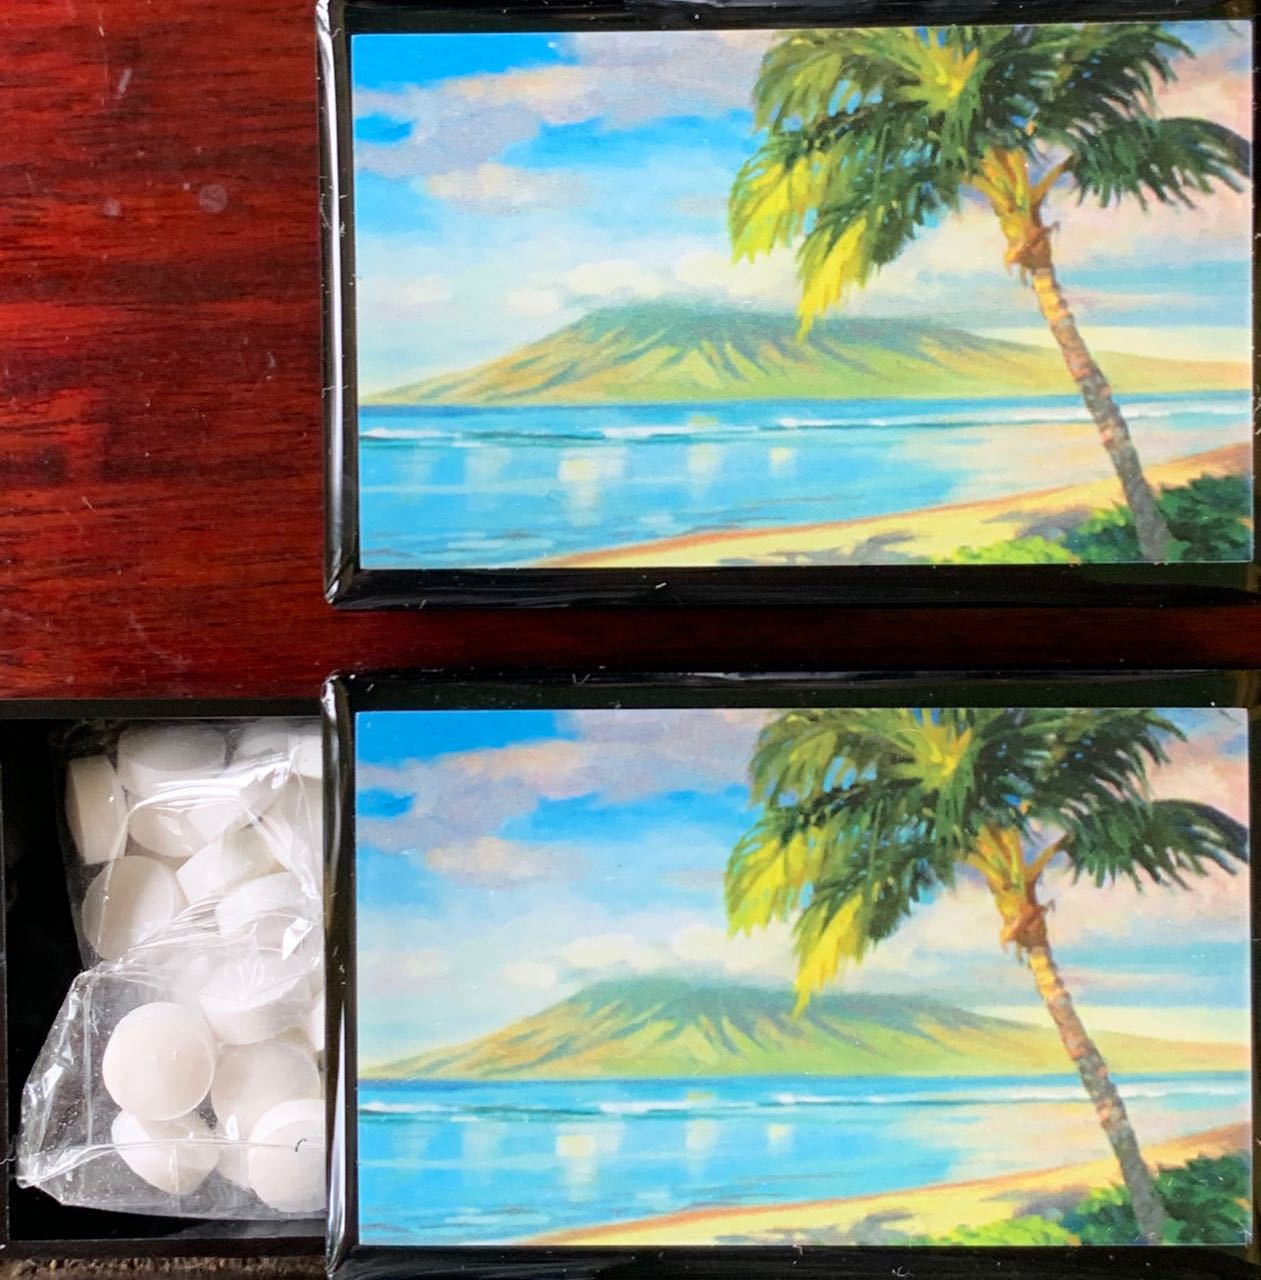 Mini Mint Slide Box: Lanai Sunrise